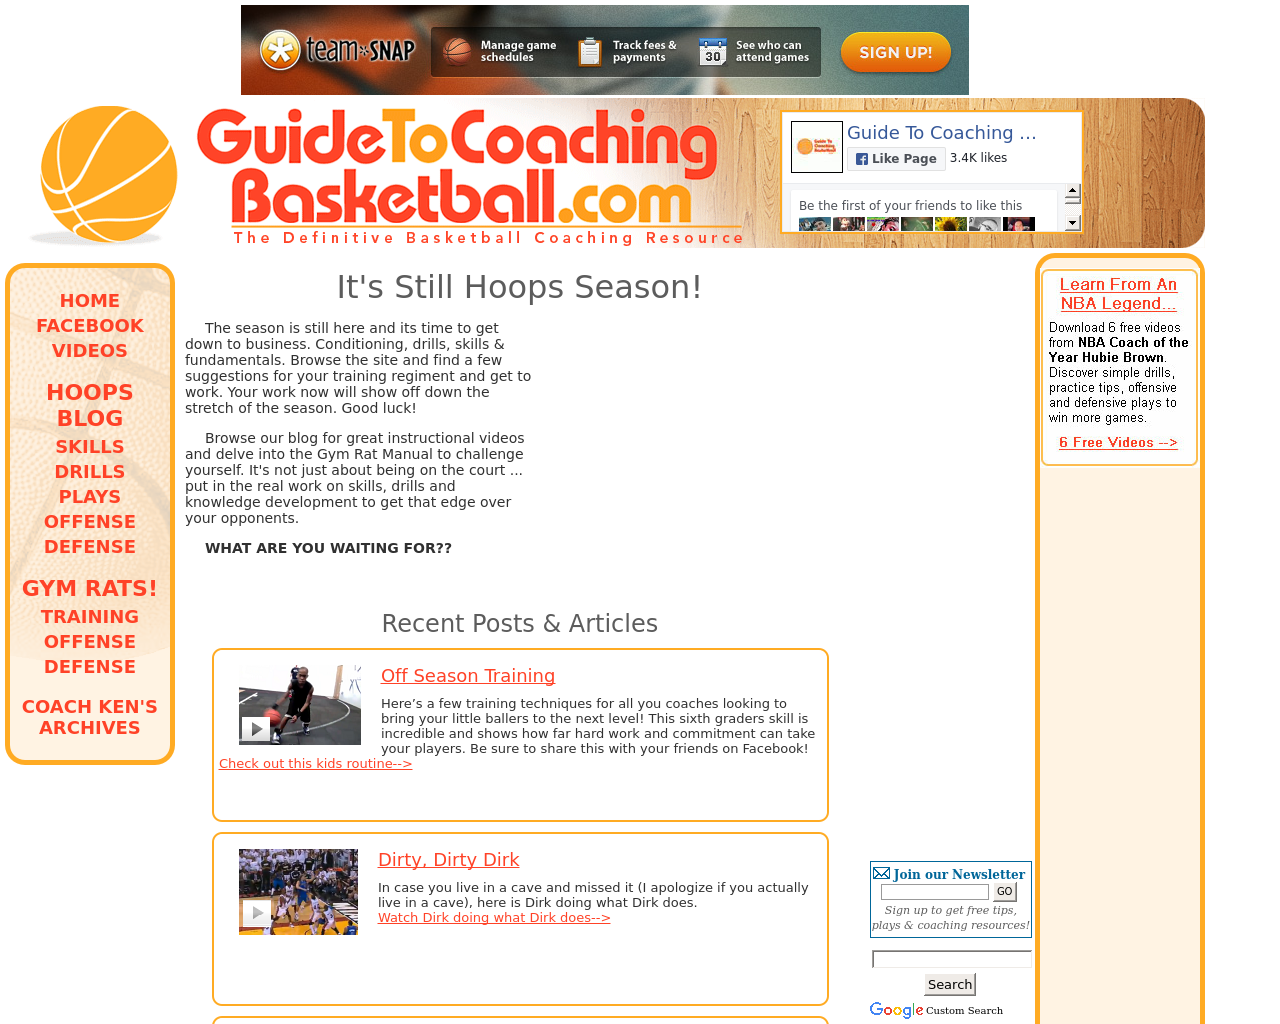 Guide-to-Coaching-Basketball-Advertising-Reviews-Pricing